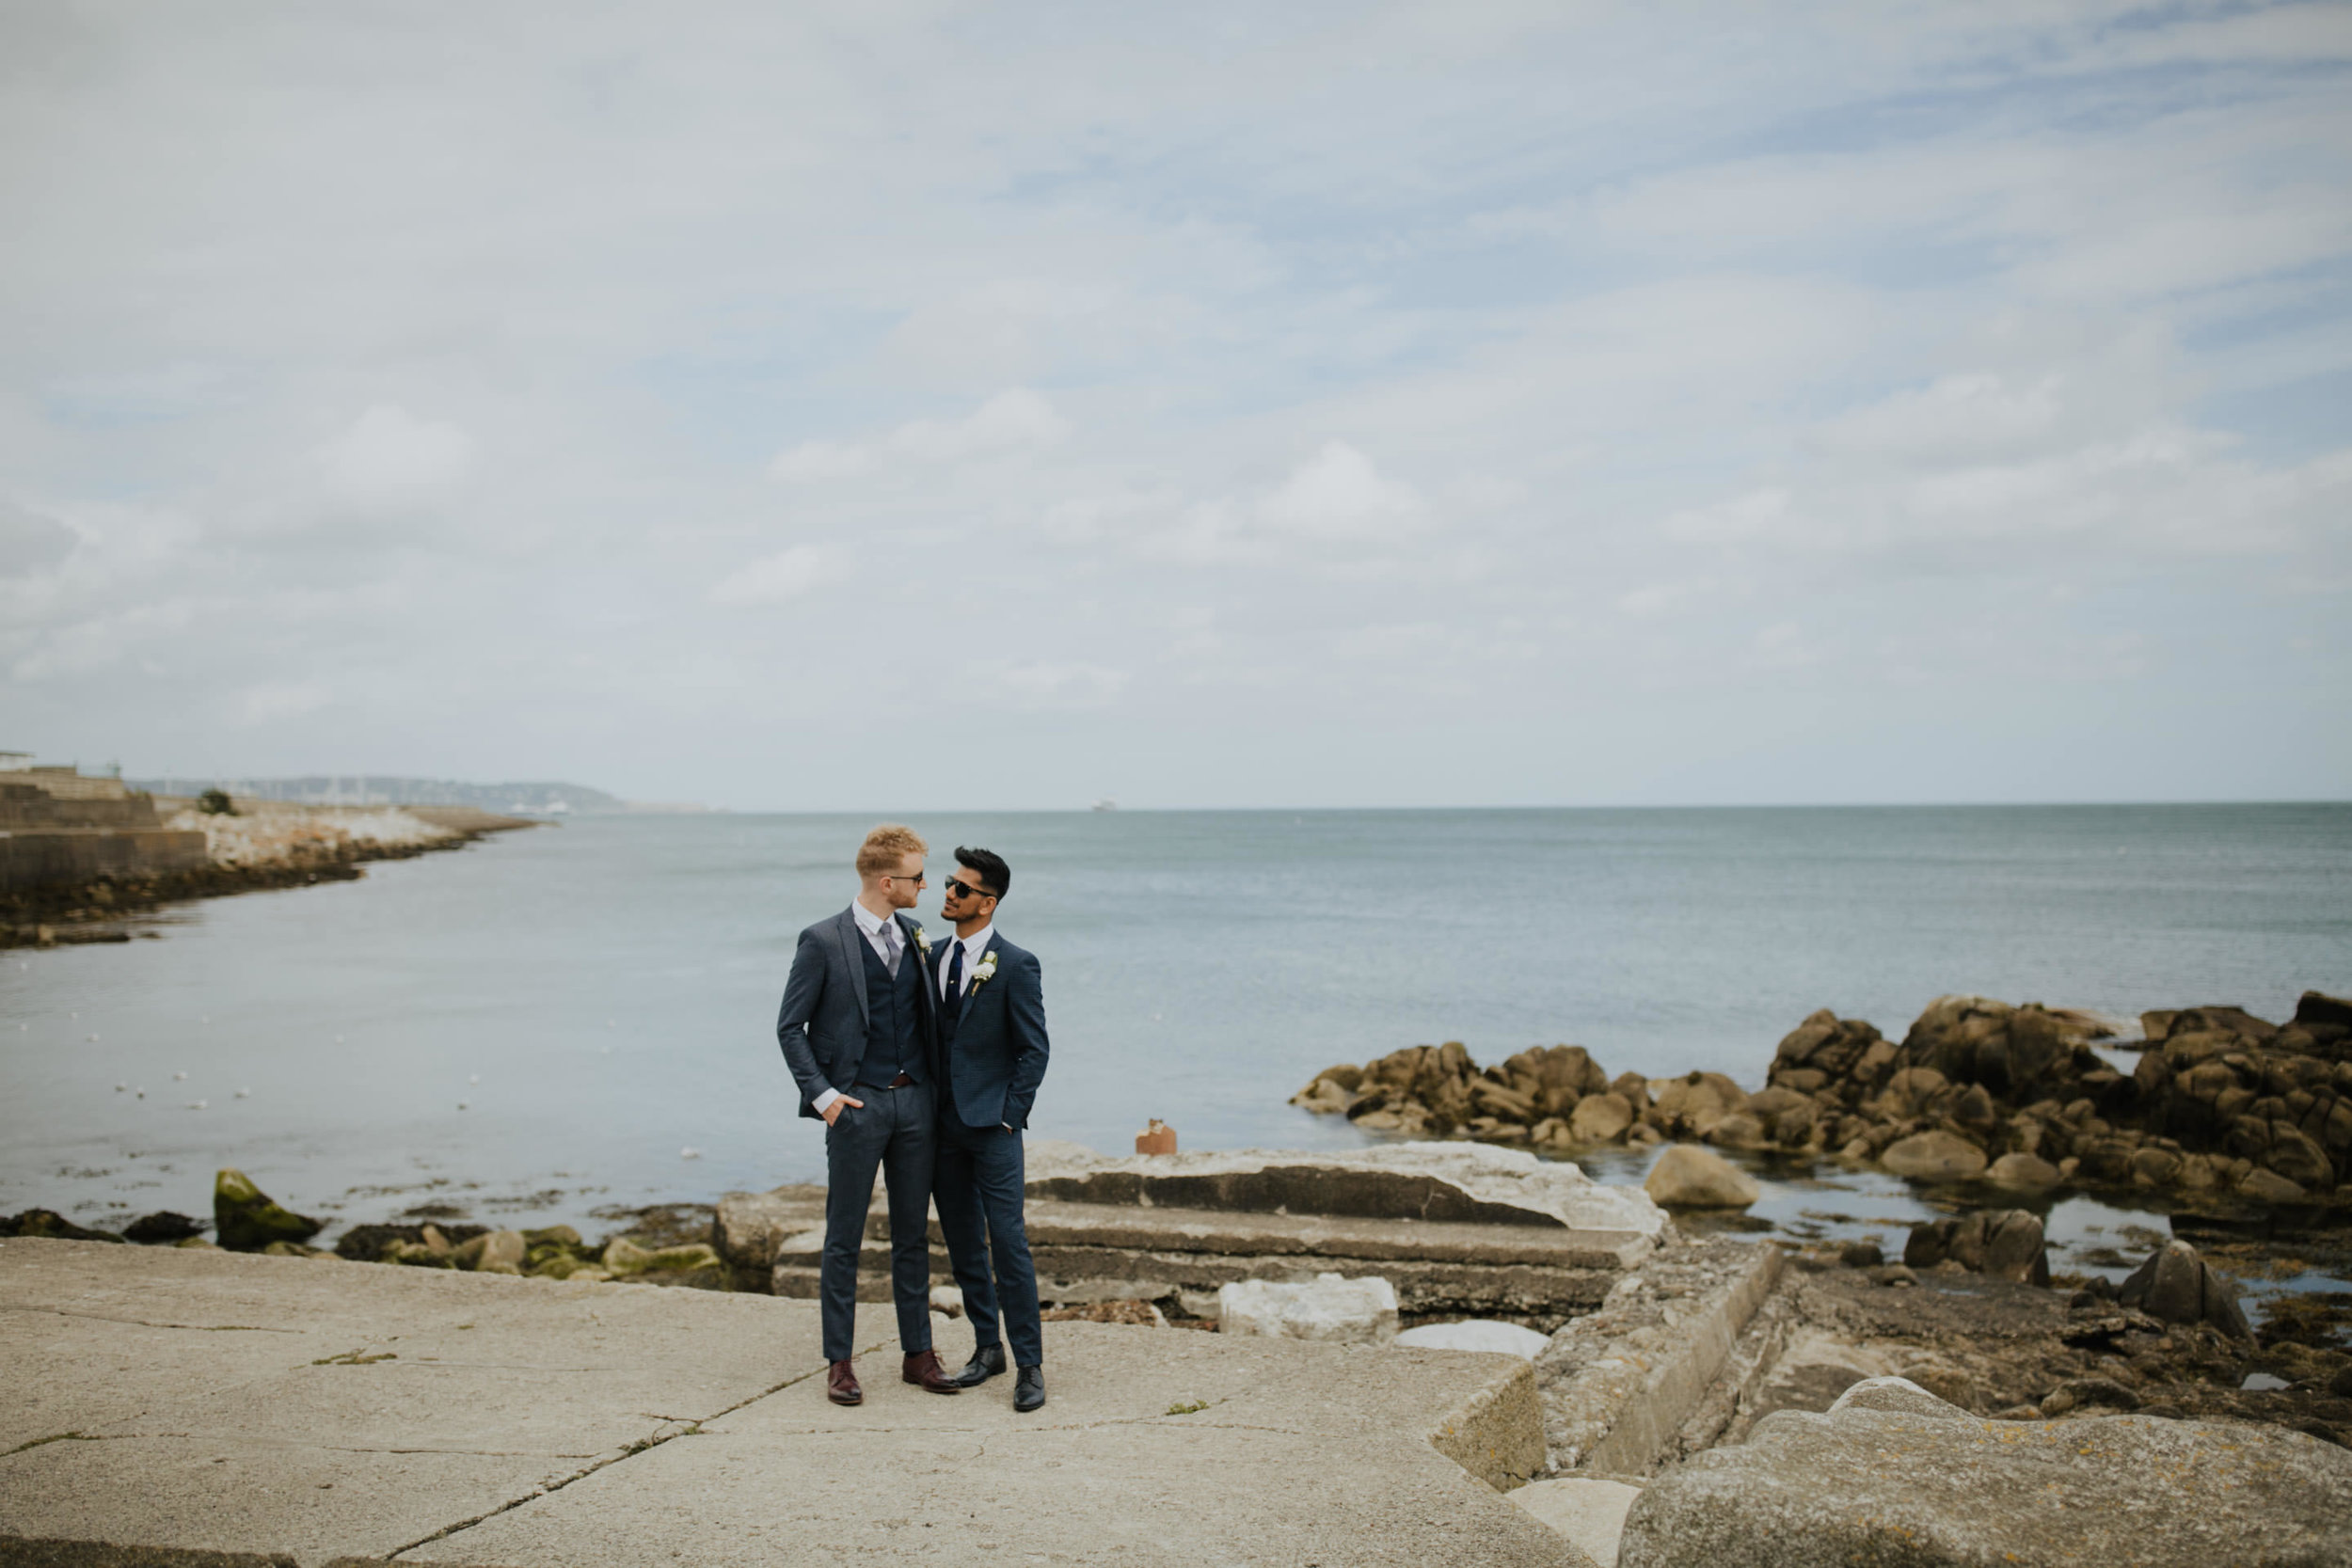 d&l_dunlaoghaire_wedding_photographer_livia_figueiredo_2.jpg